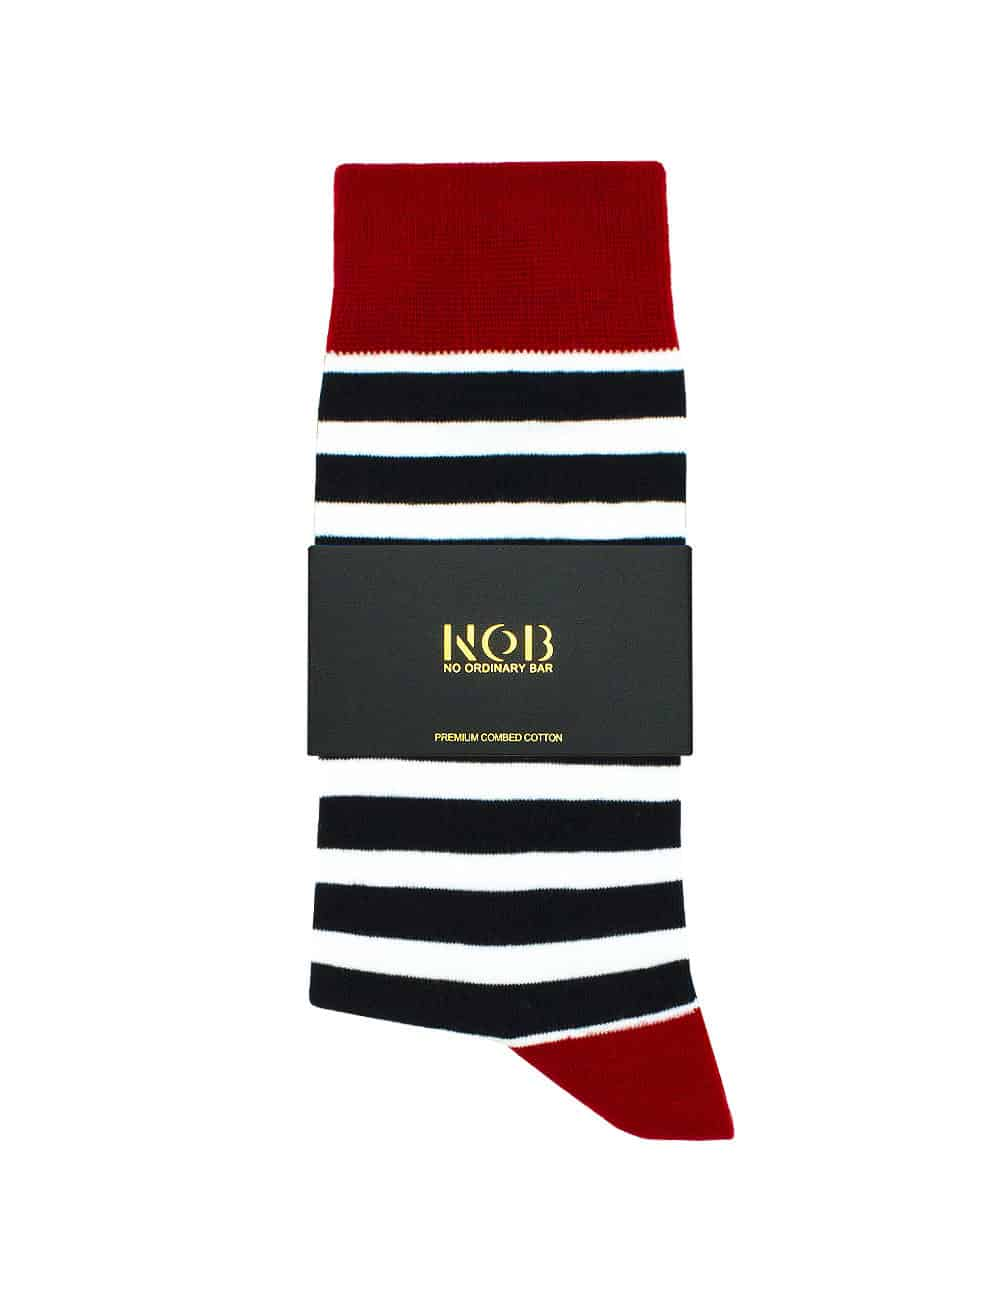 Navy and White Stripes Crew Socks made with Premium Combed Cotton SOC3B.NOB1